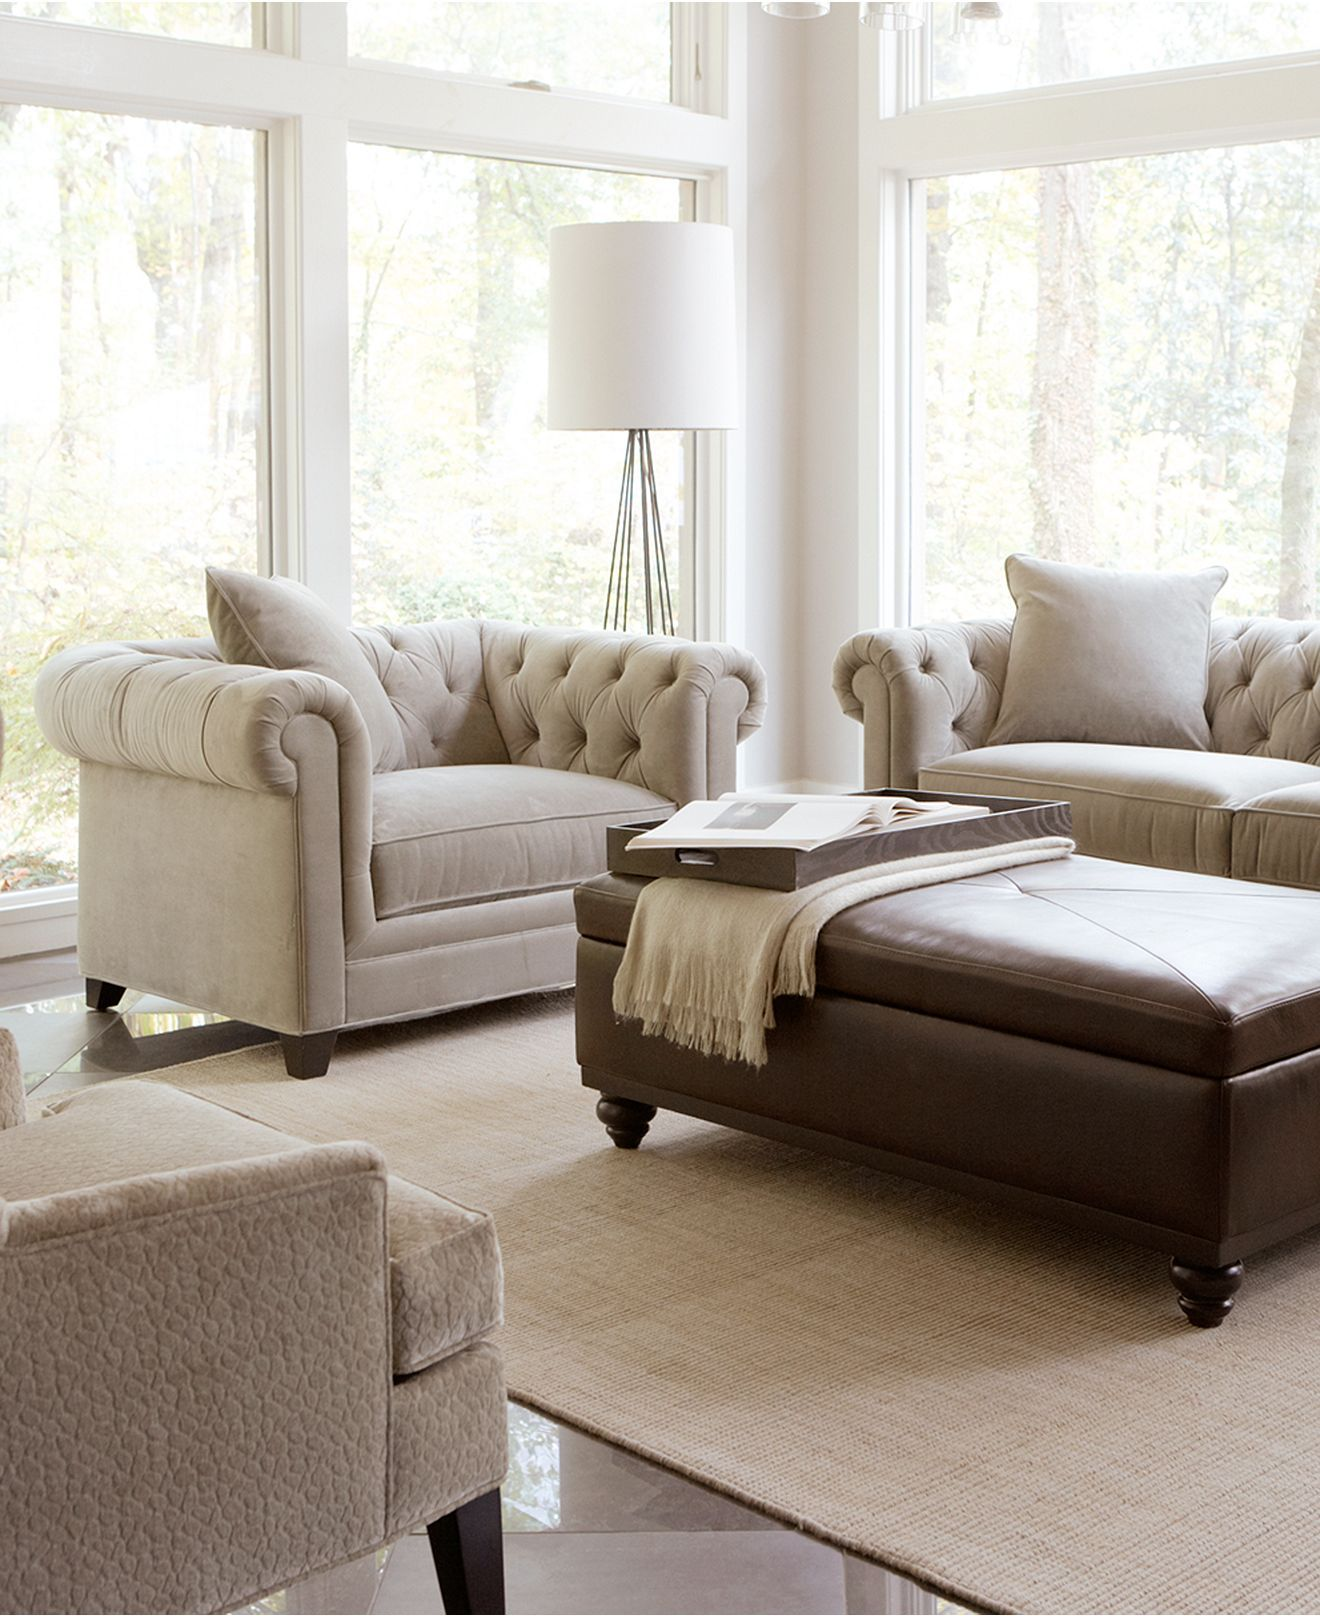 Martha Stewart Collection Saybridge Living Room Furniture Collection ...